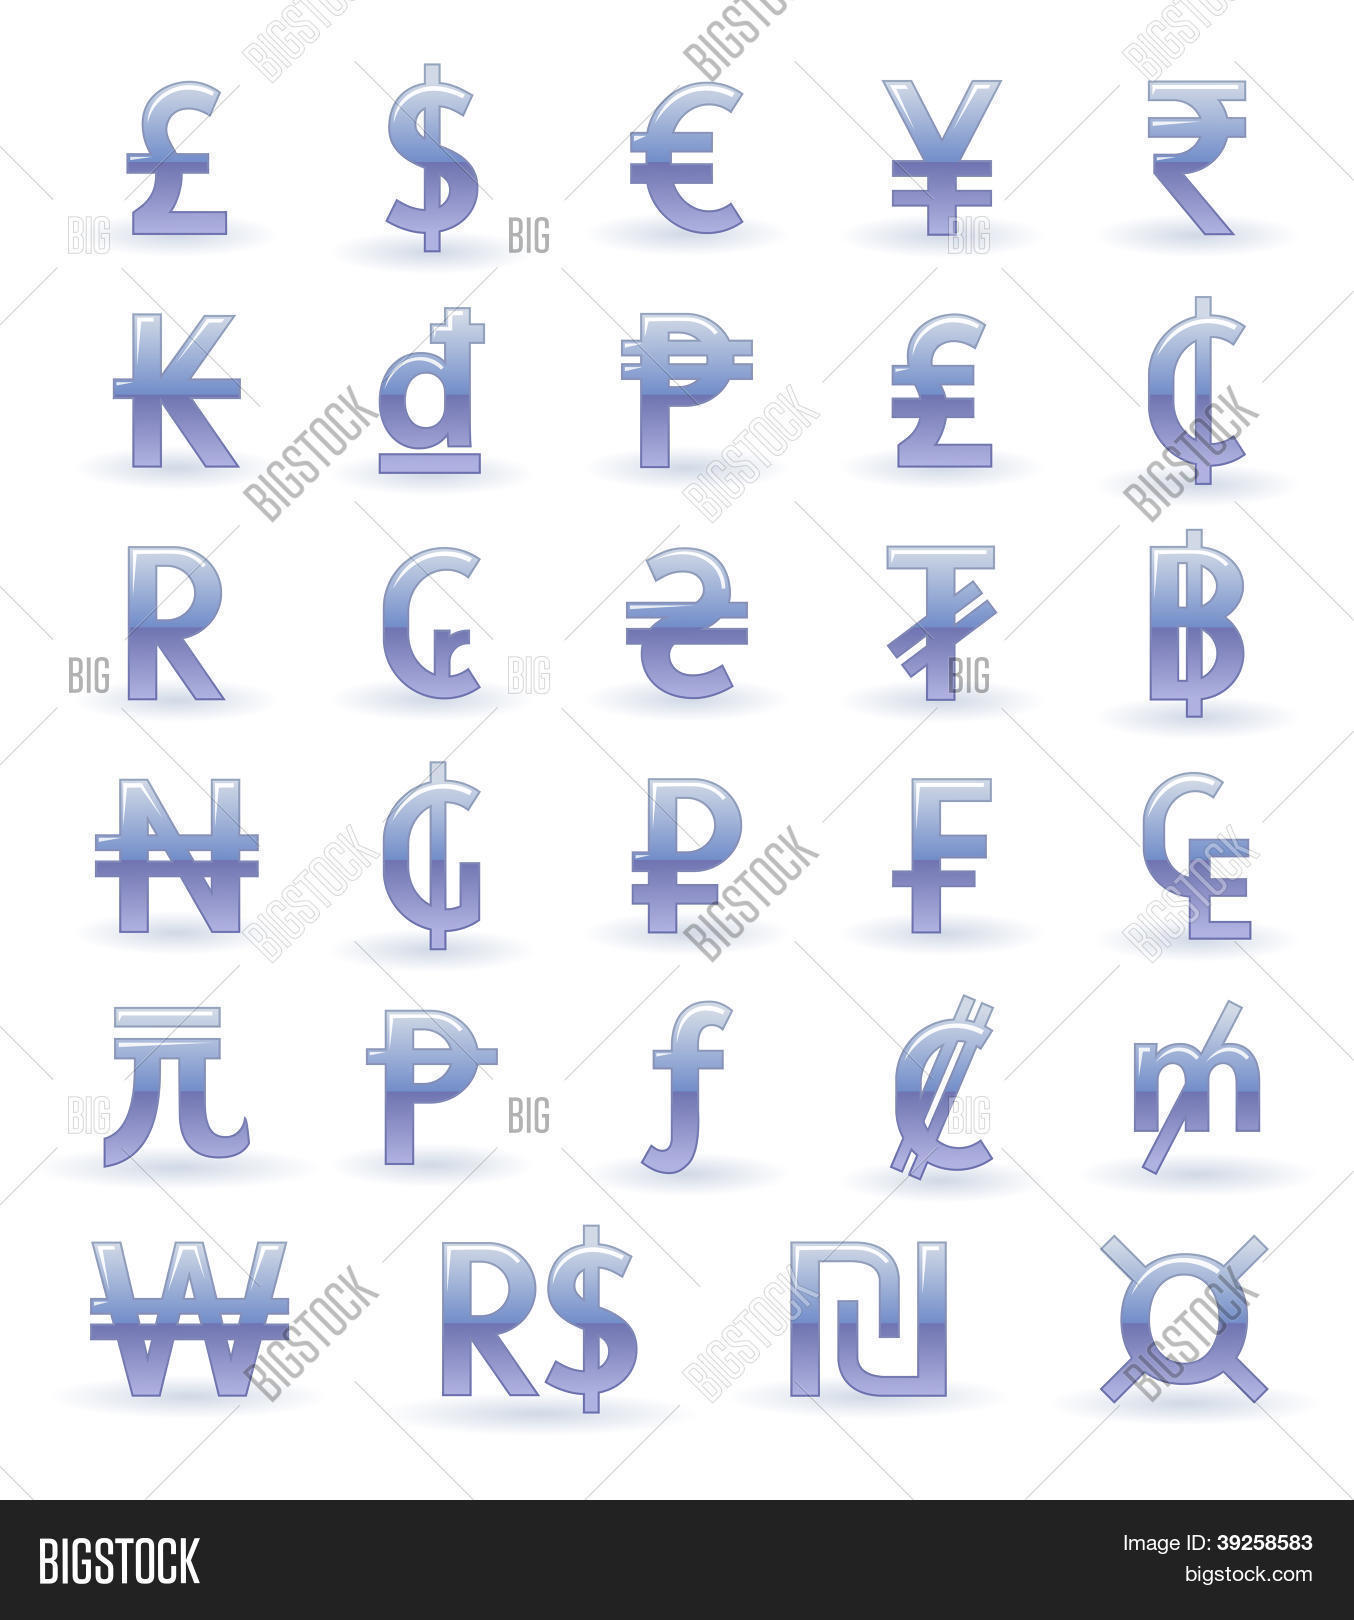 Currency Symbols Vector Photo Free Trial Bigstock